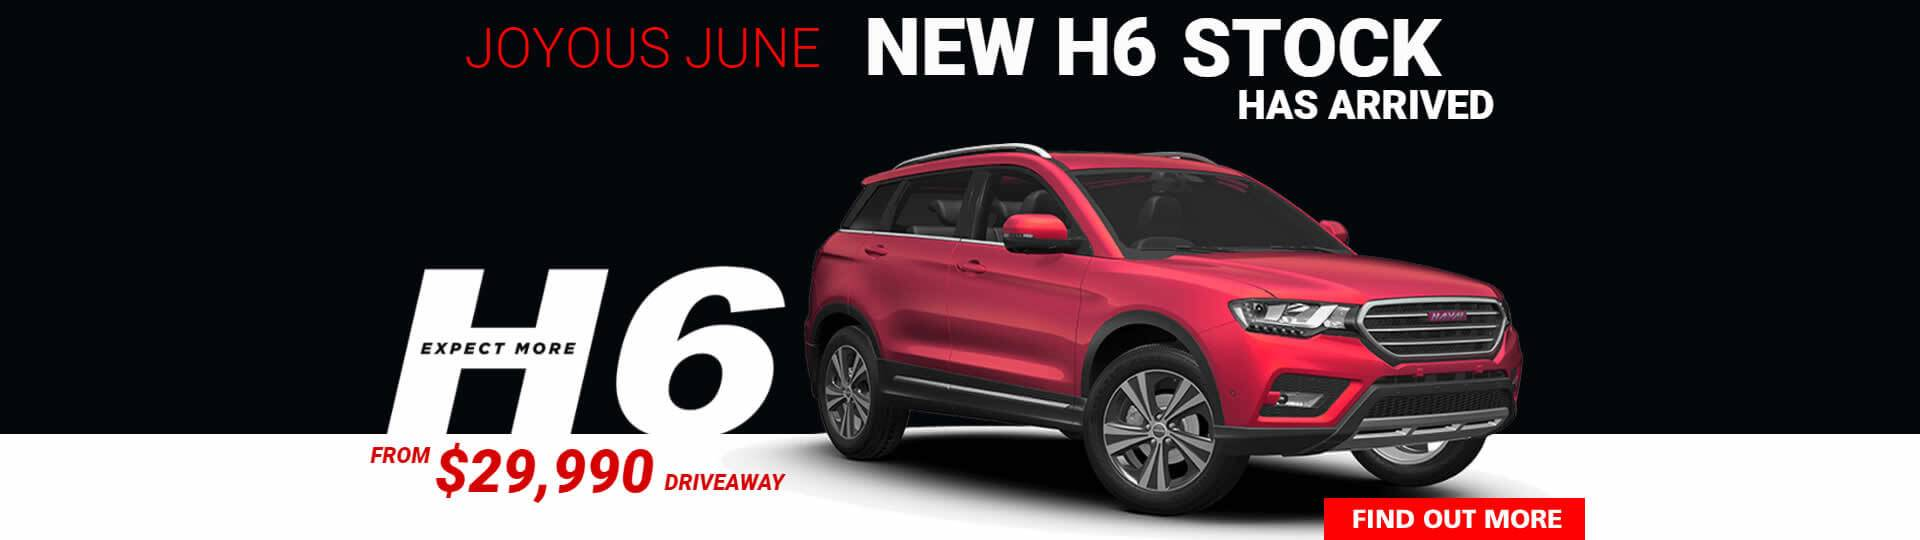 Haval H6 New Stock